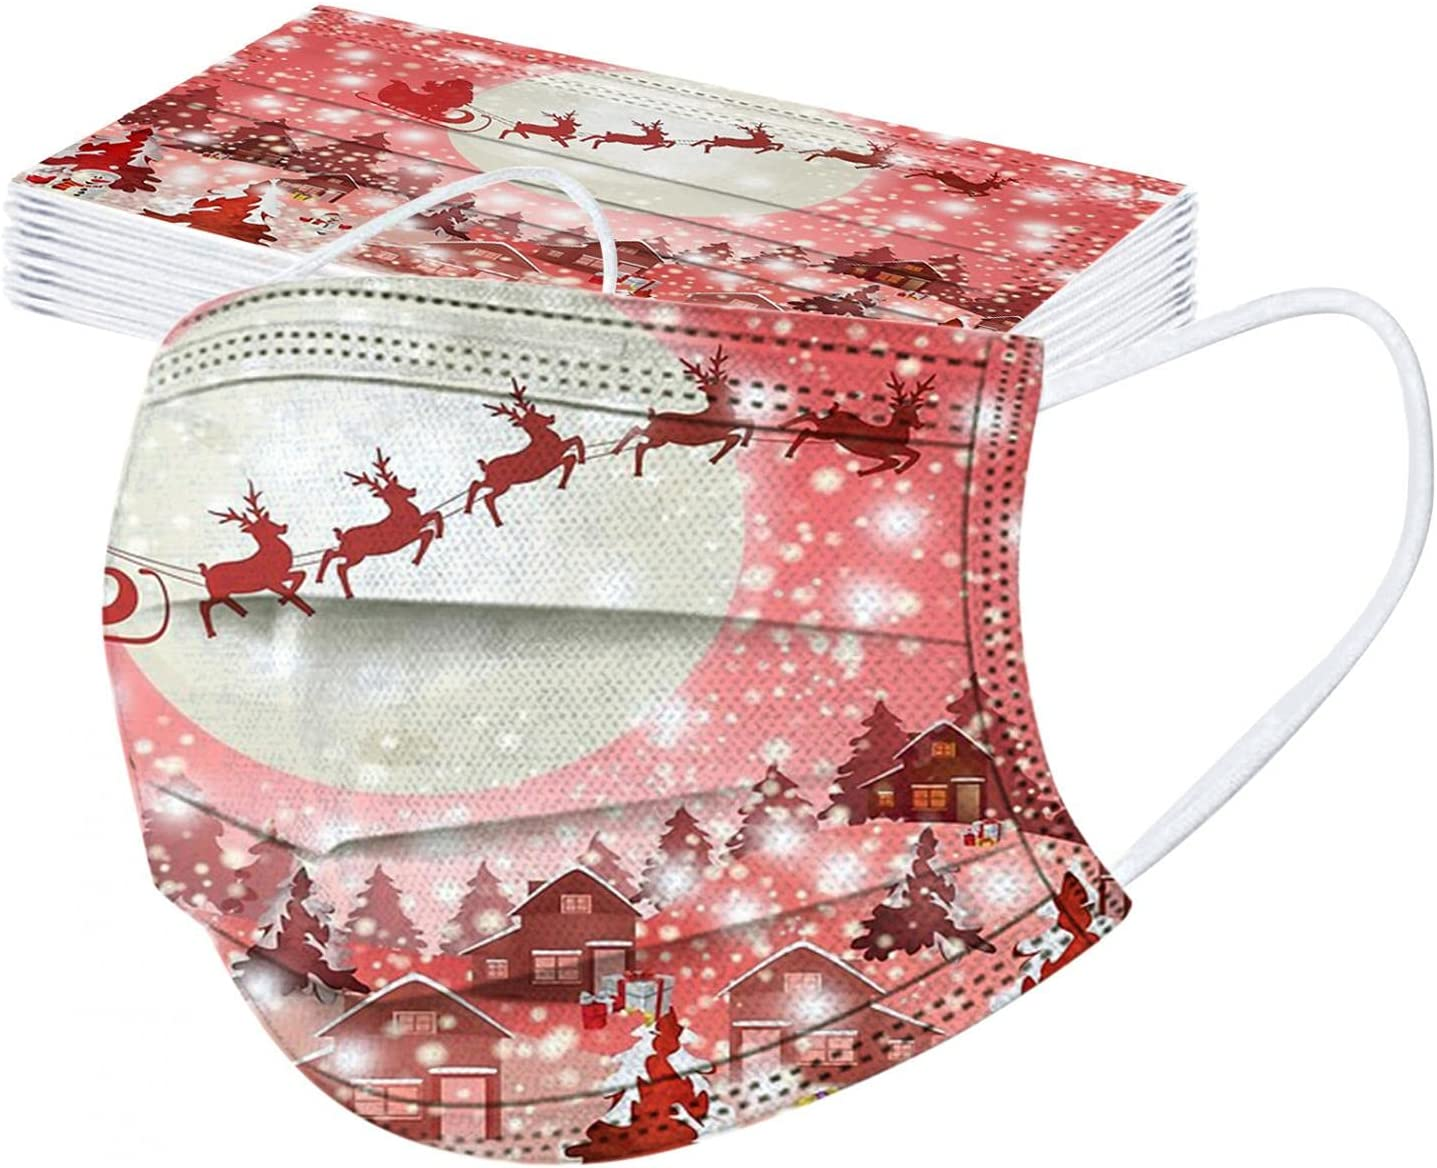 WANGPU Christmas Disposable Face Masks 10 Pack Kids 3 Ply Non-Woven Mouth Cover Breathable Protective for Boys Girls